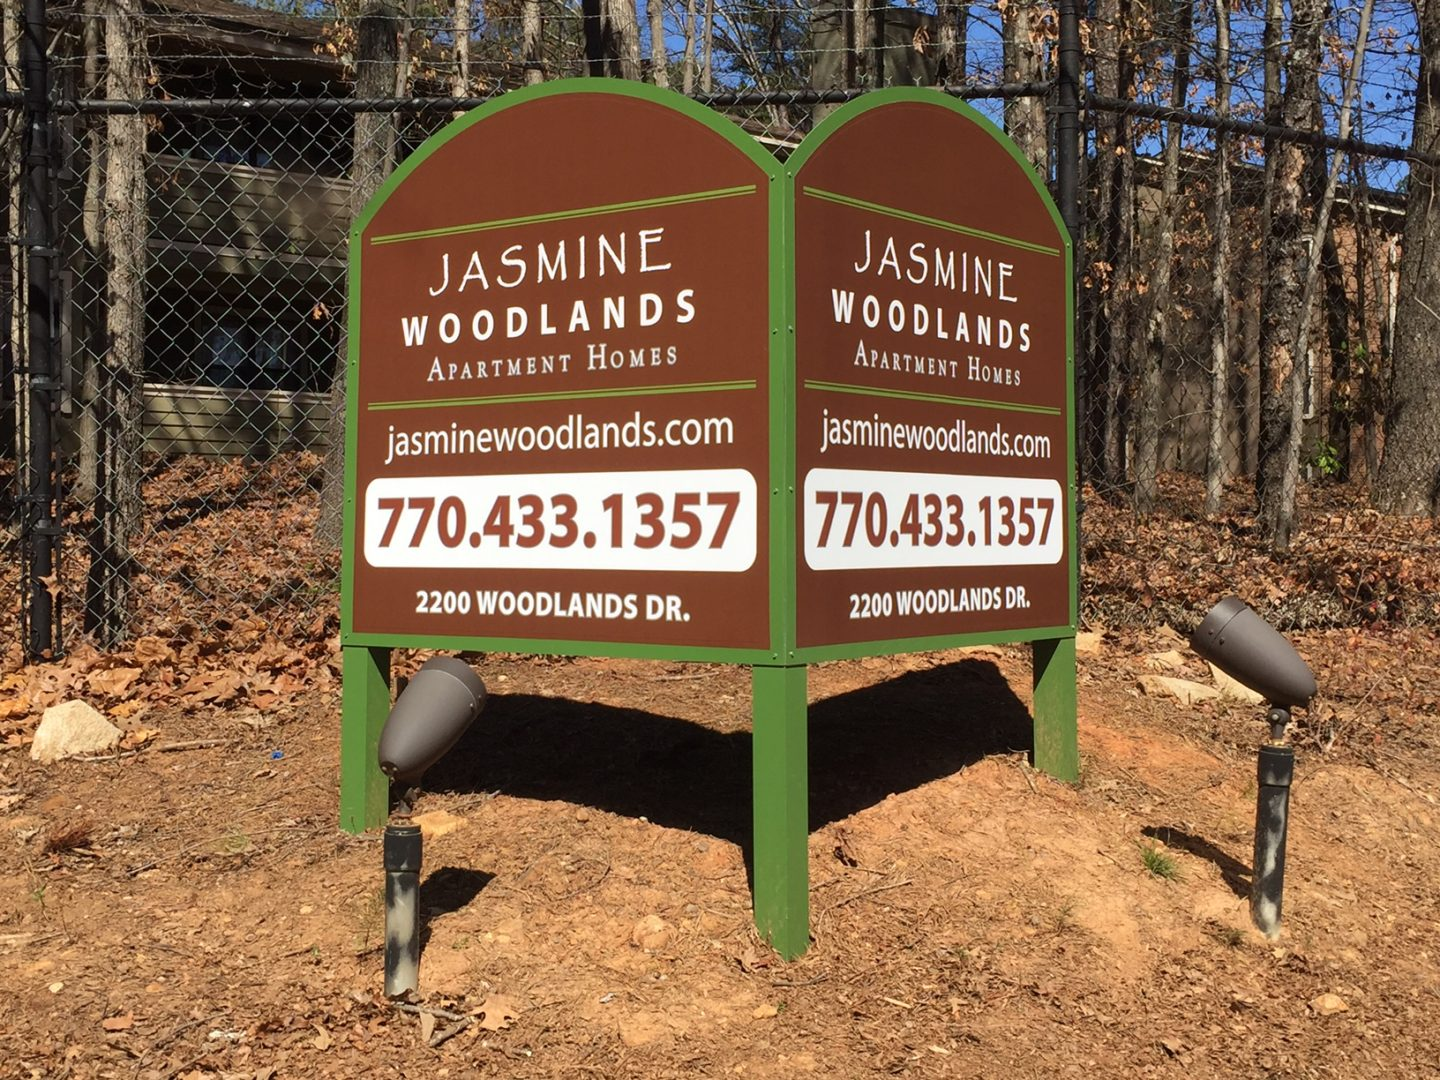 Post Signs - Signs of Intelligence in Peachtree Corners, Brookhaven, Chamblee, Alpharetta, Brookhaven, Chamblee, Duluth, Dunwoody, Johns Creek, Lilburn, Norcross, Sandy Springs, Suwanee